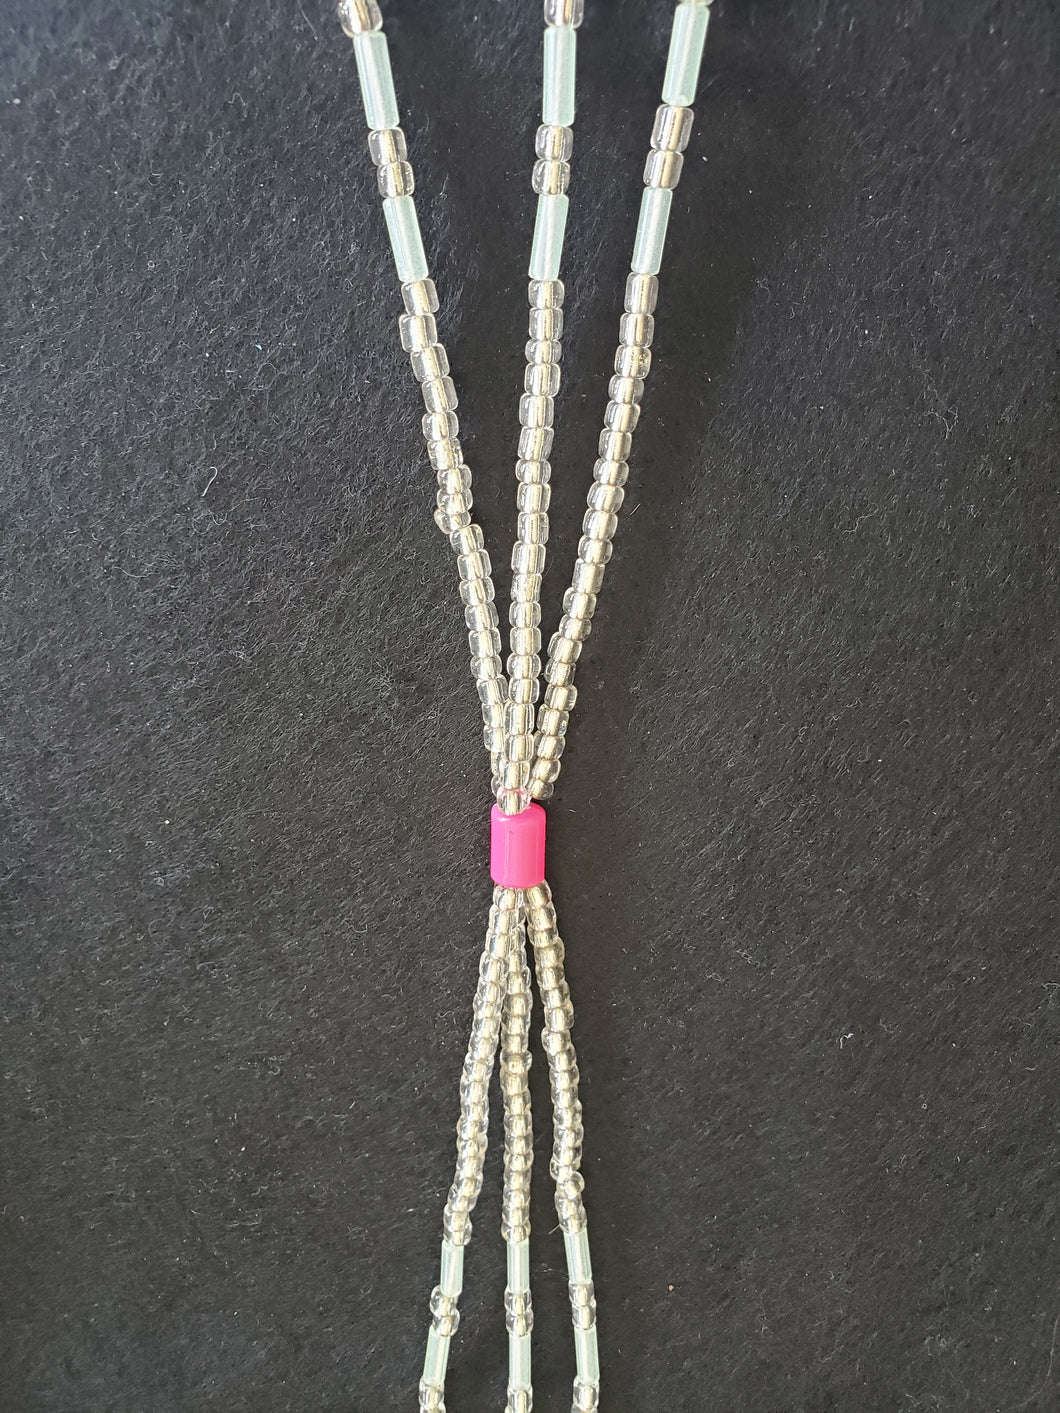 Clear 3 Strand Tie-on 37